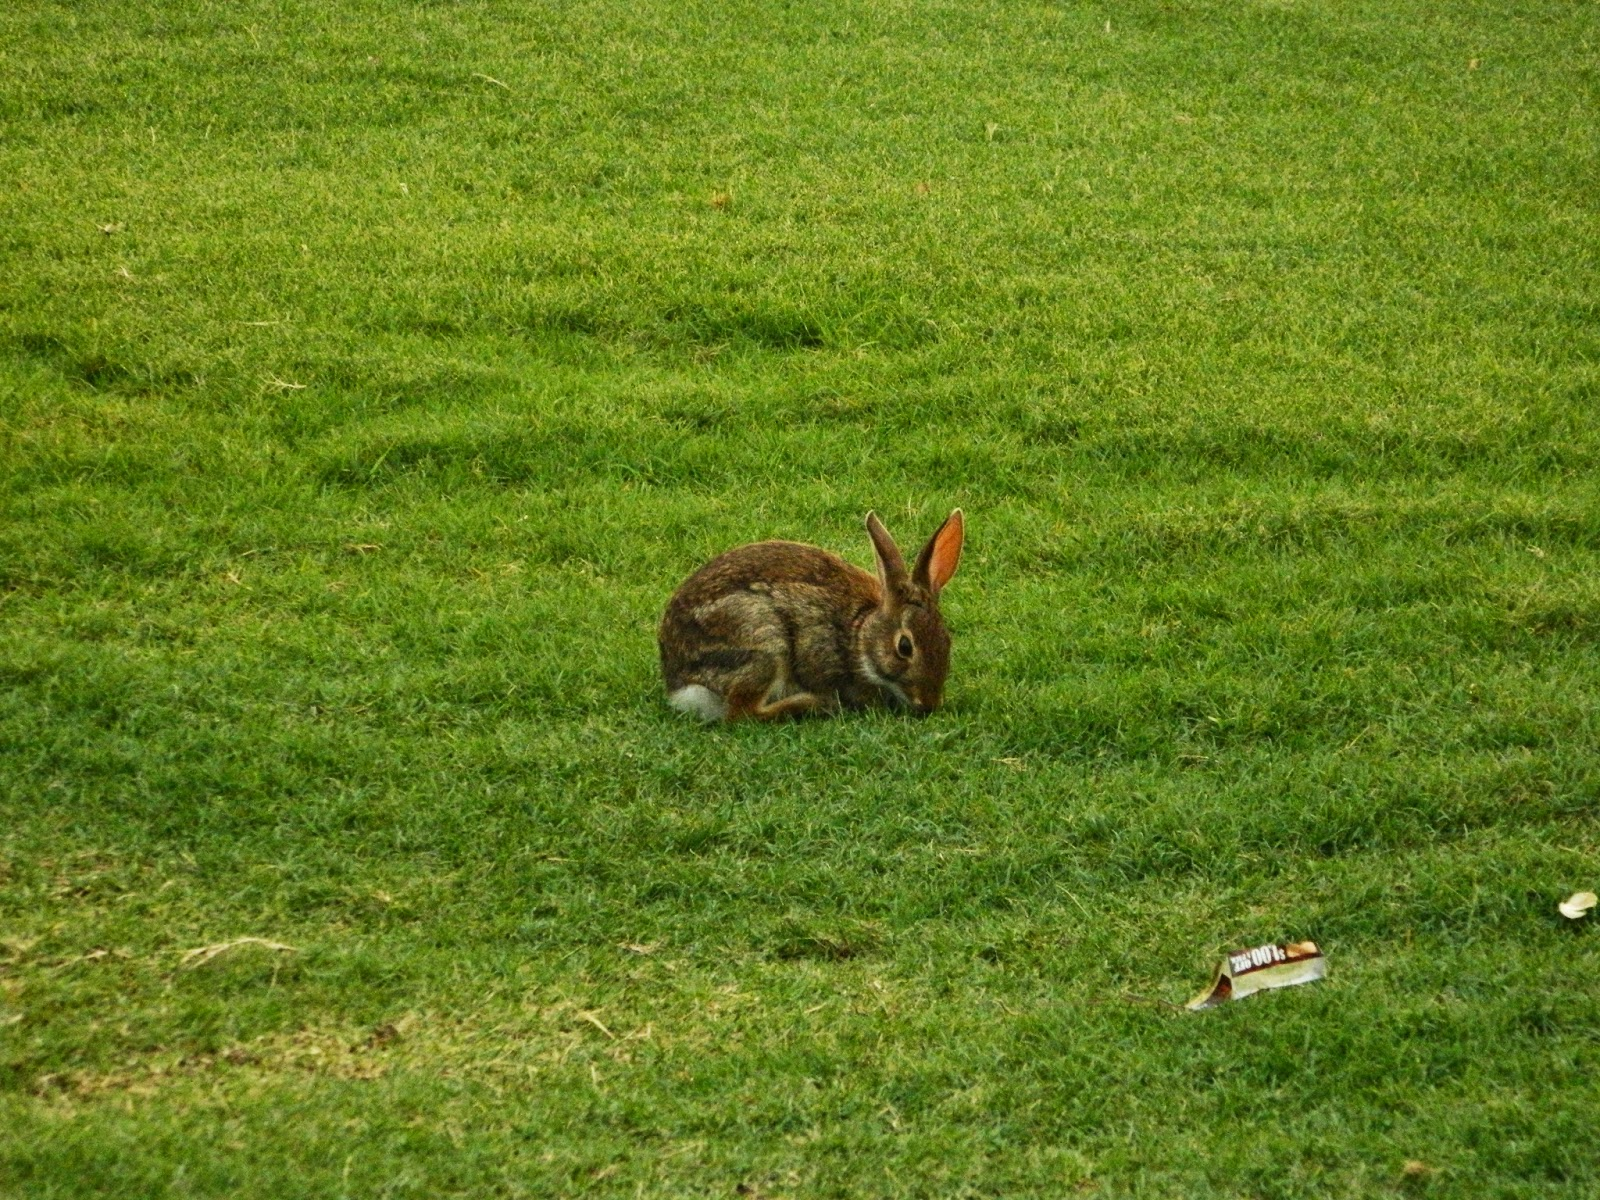 rabbit disney world grass